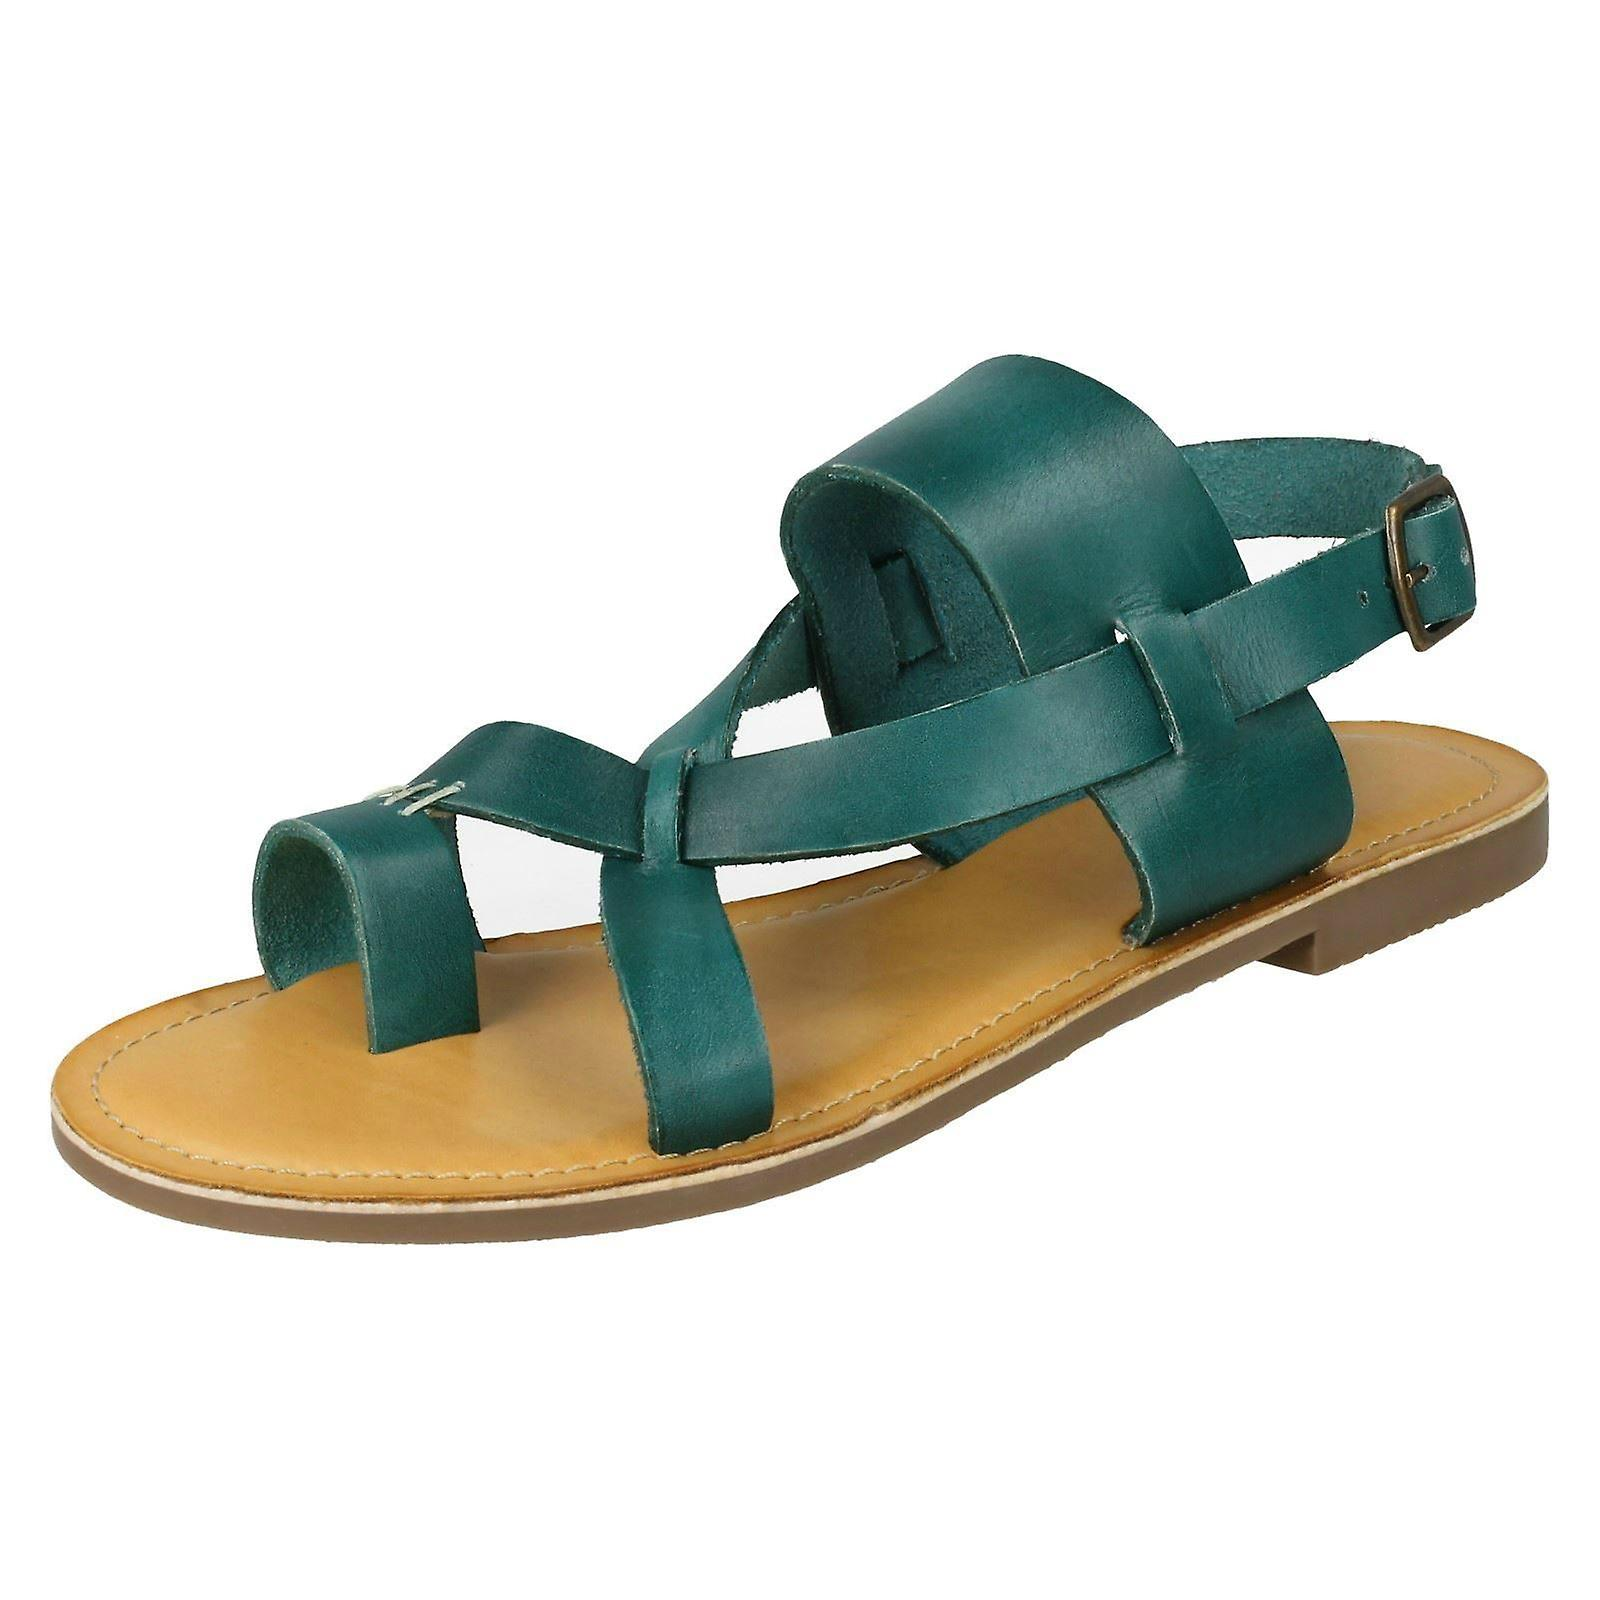 Ladies Leather Collection Toeloop Sandals F00127 - Green Leather - UK Size 4 - EU Size 37 - US Size 6